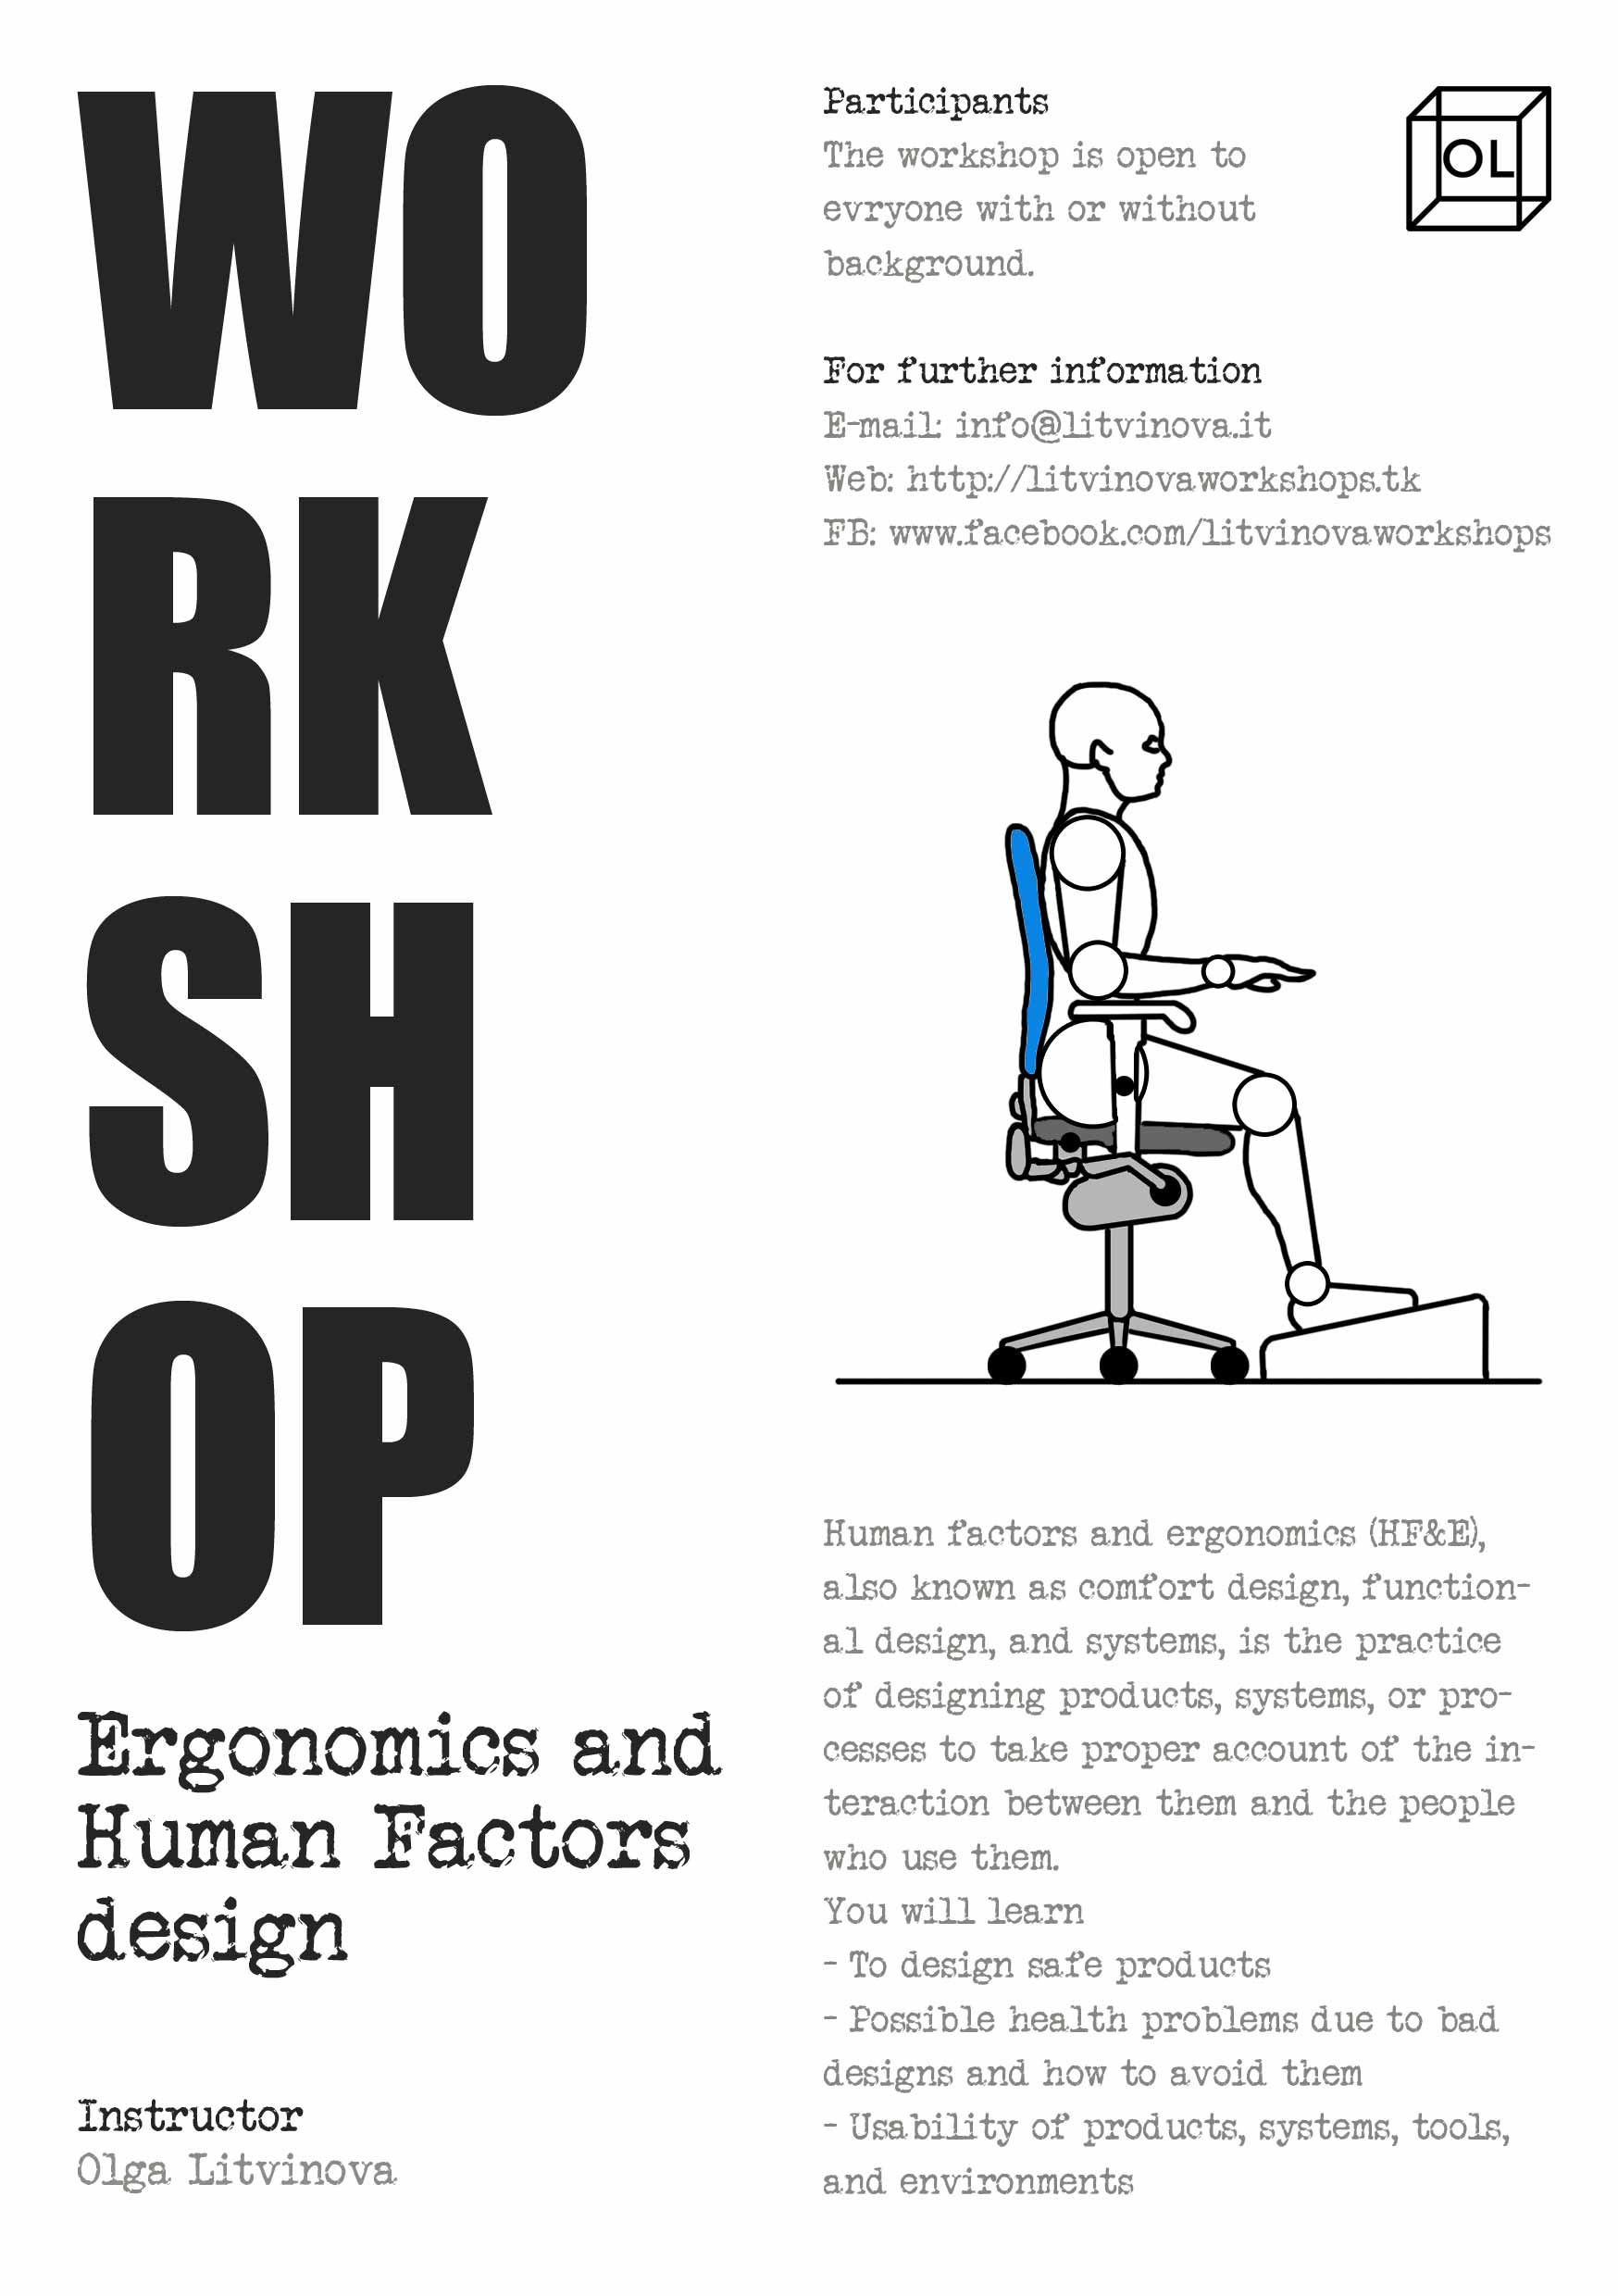 Ergonomics workshop